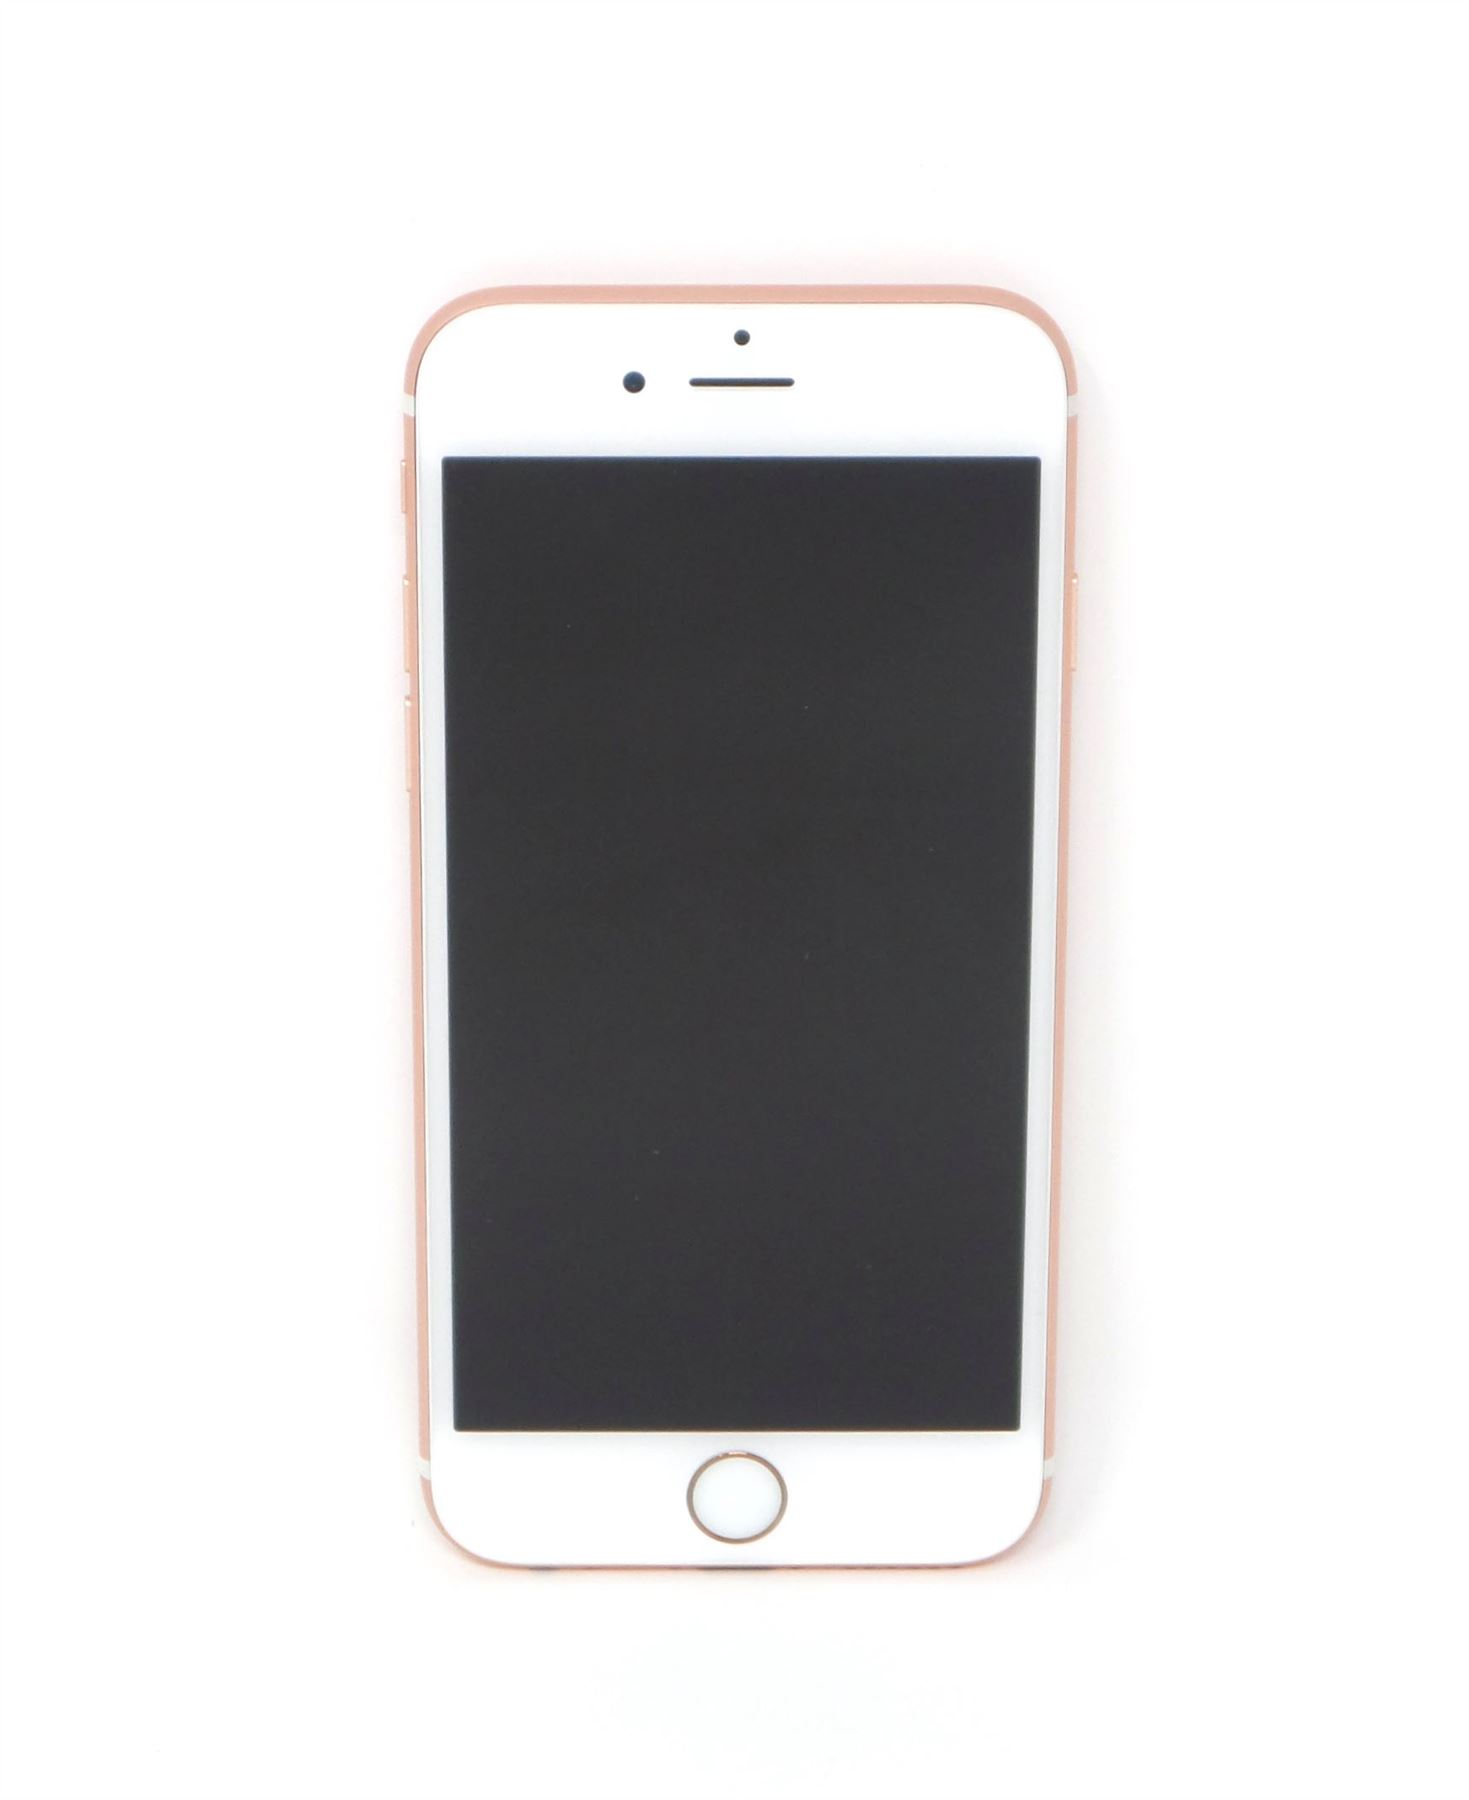 Apple-iPhone-6s-Carrier-Options-AT-amp-T-T-Mobile-Verizon-Unlocked-16-64-128GB-New thumbnail 18